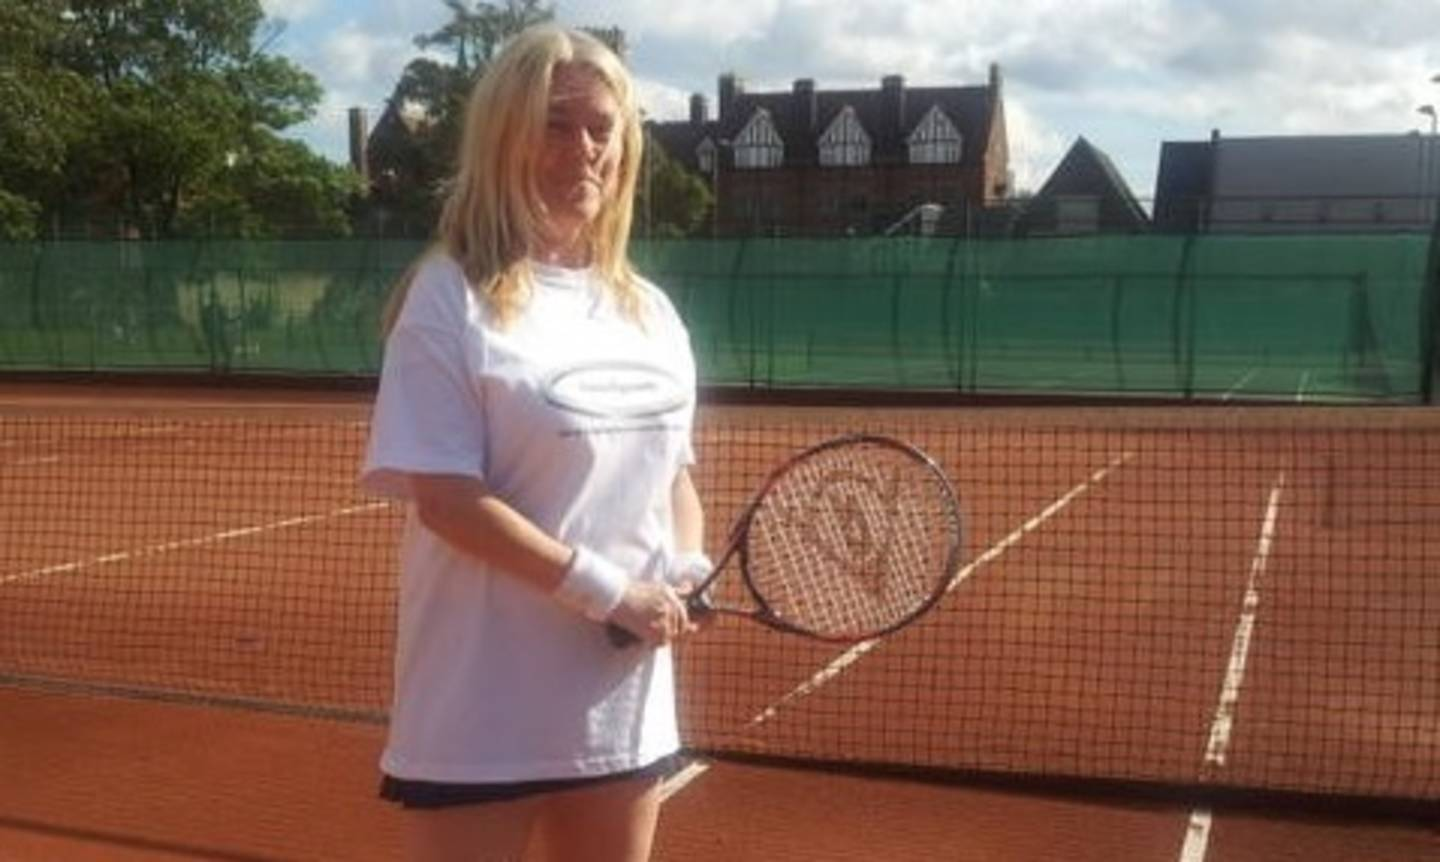 Fiona Musgrove playing tennis